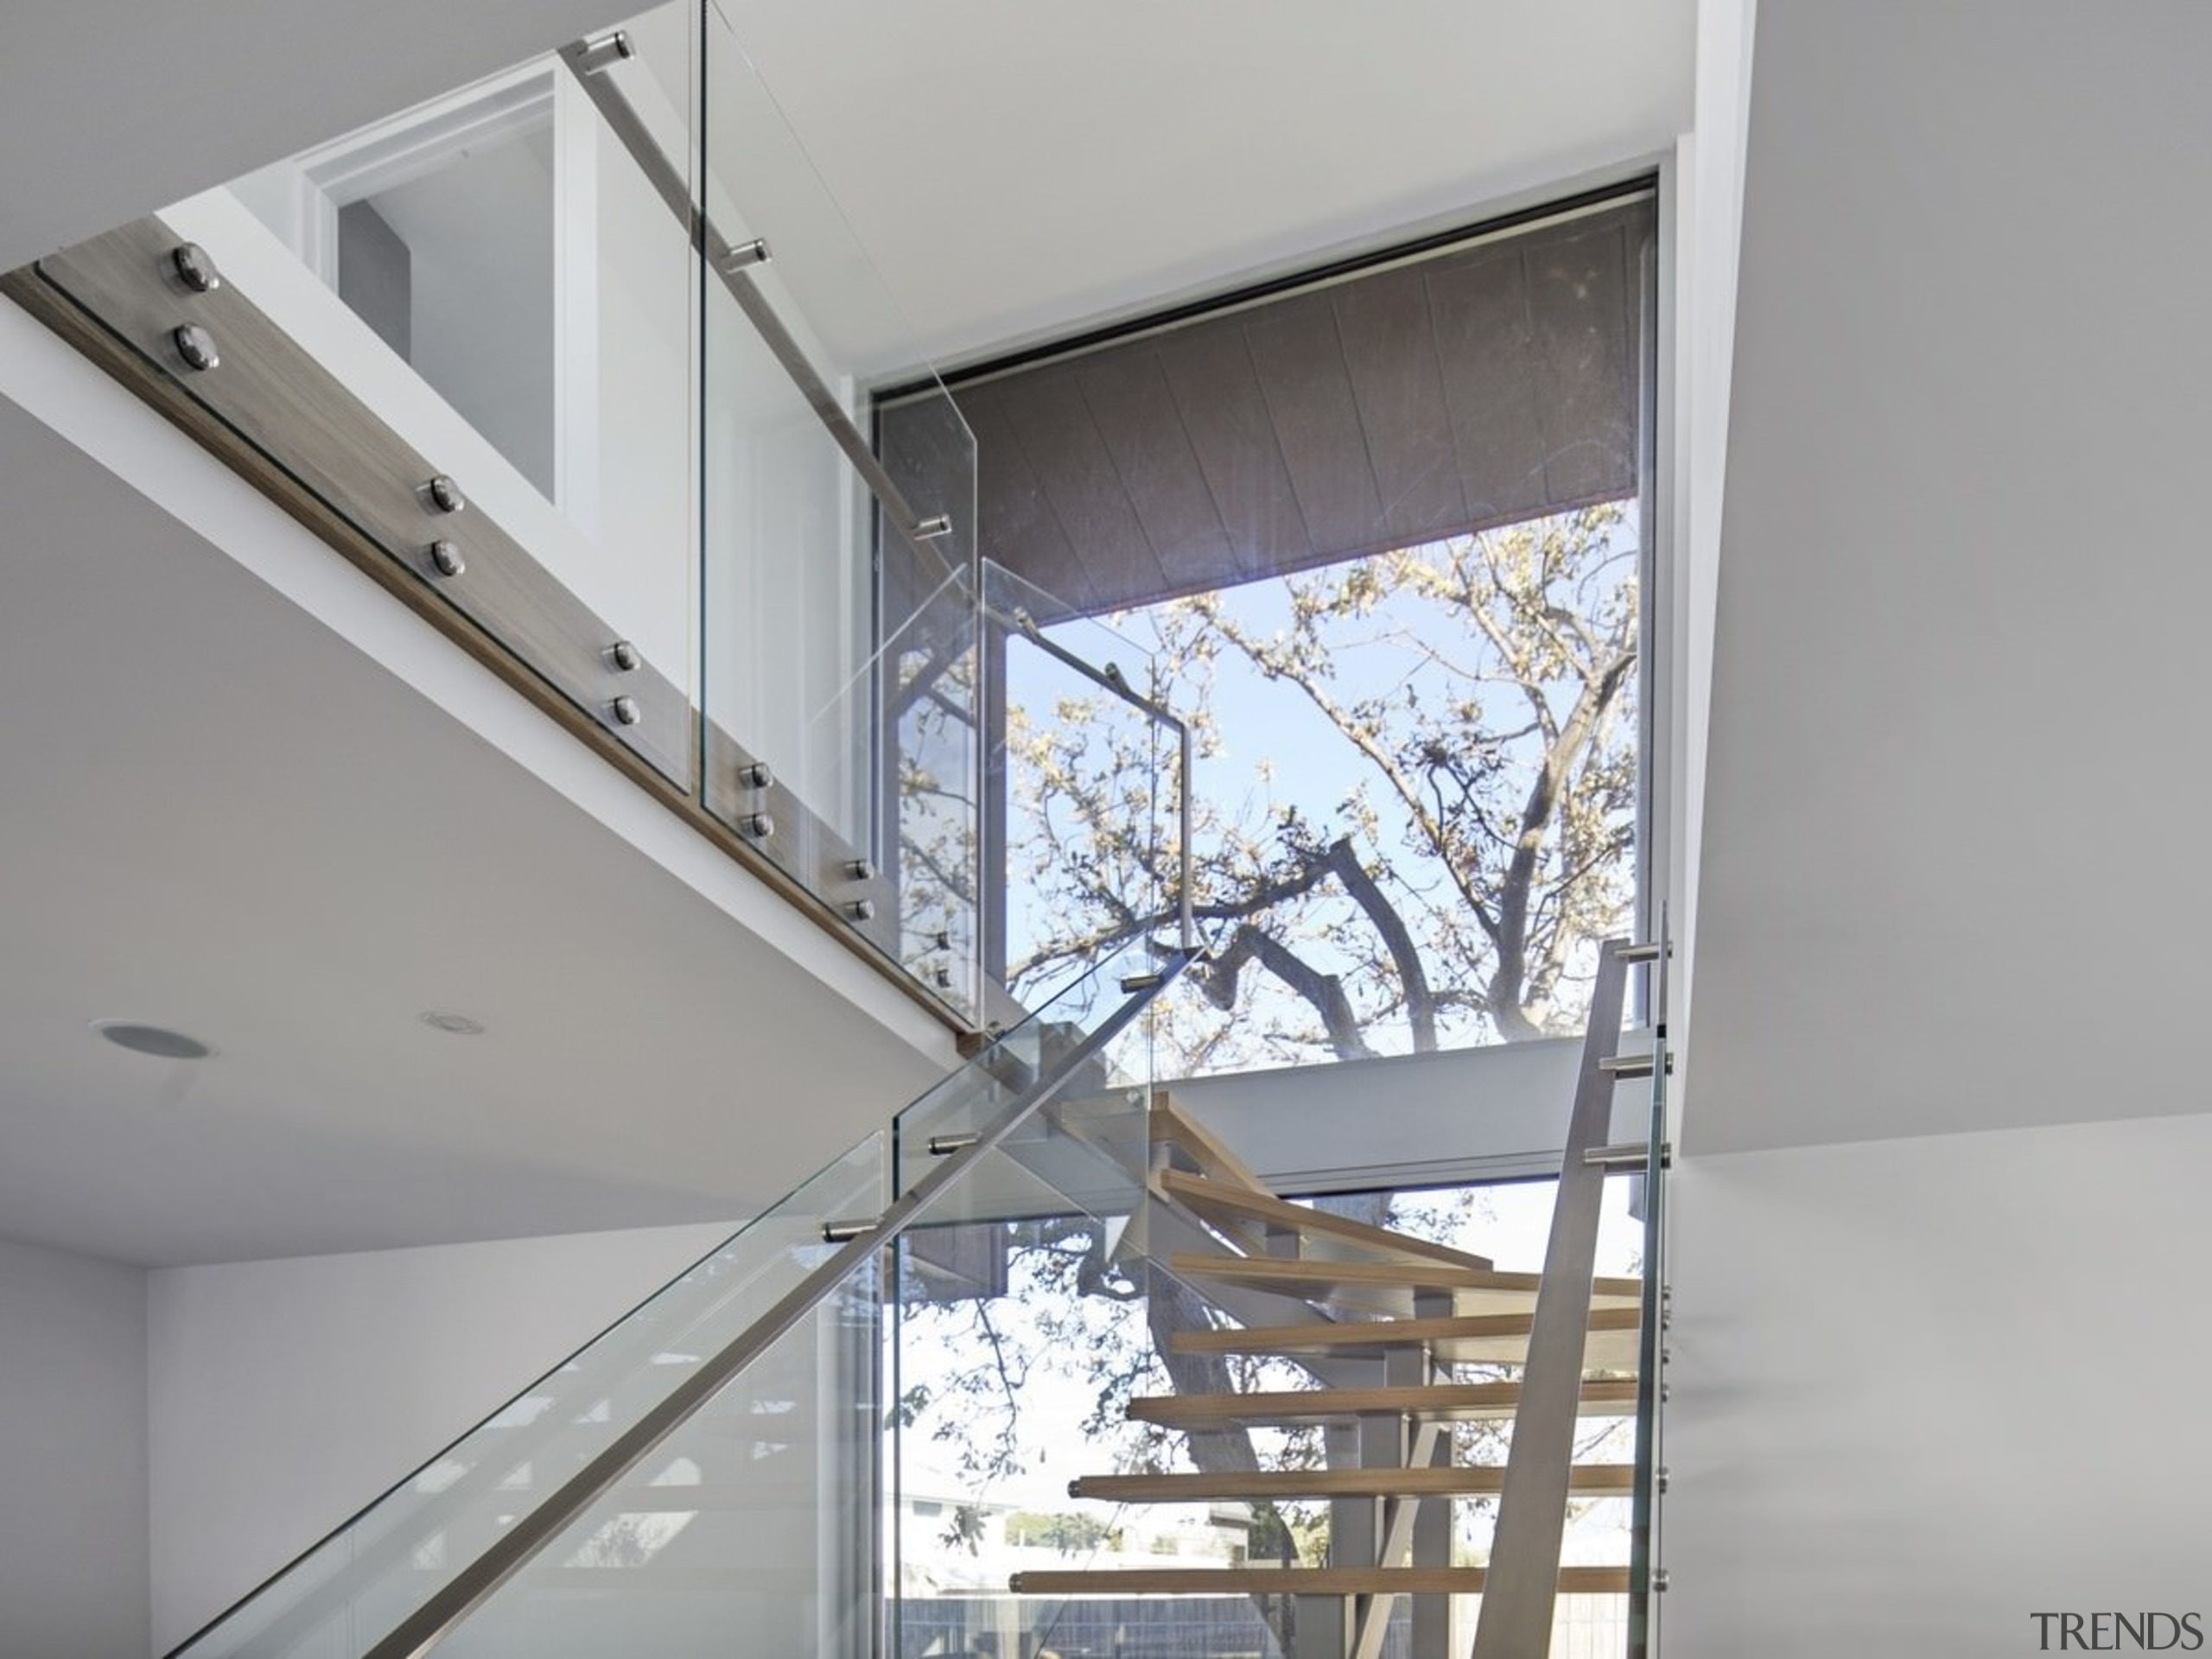 This floating stairway rises up to the second architecture, ceiling, daylighting, glass, handrail, house, interior design, stairs, structure, window, gray